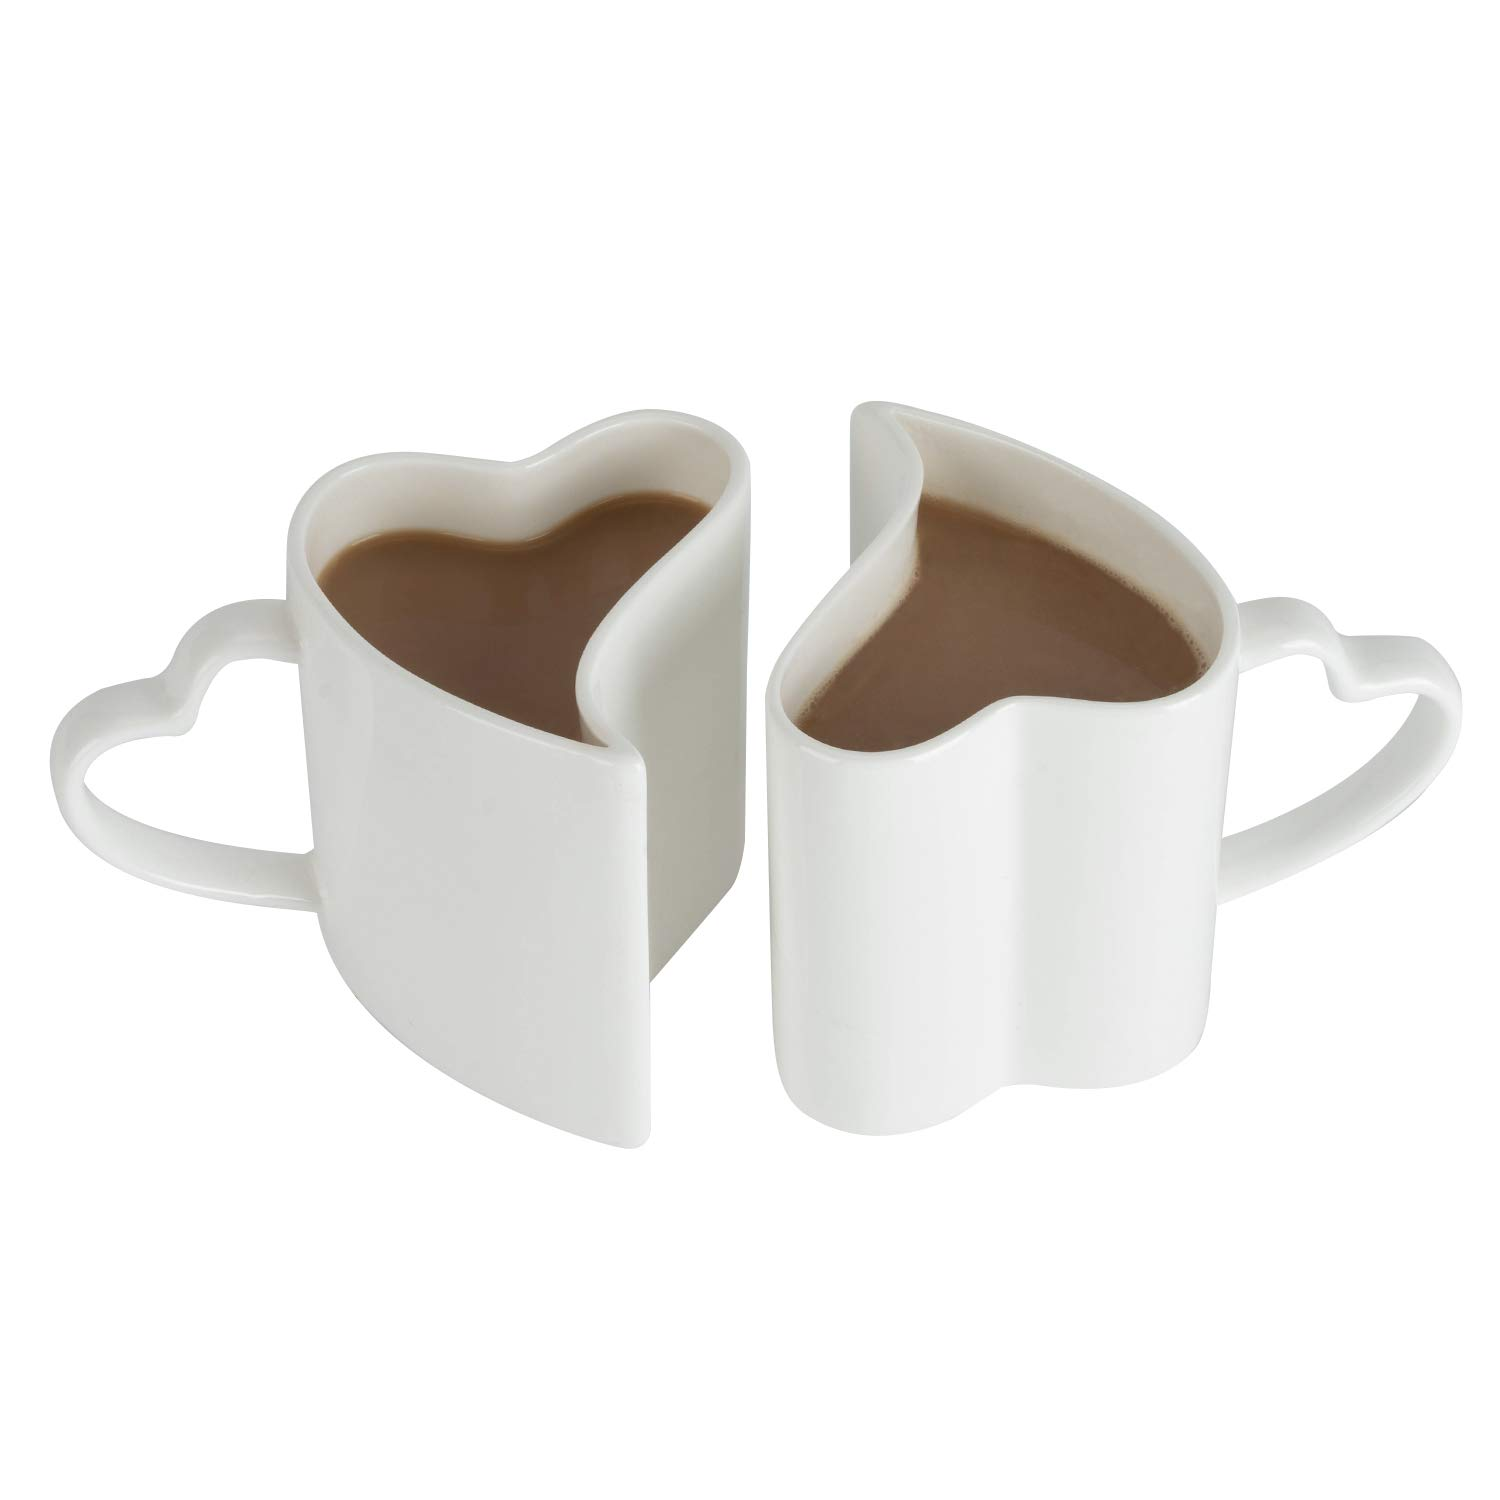 Couples Ceramic Coffee Cup Heart Shape His and Hers Ceramic